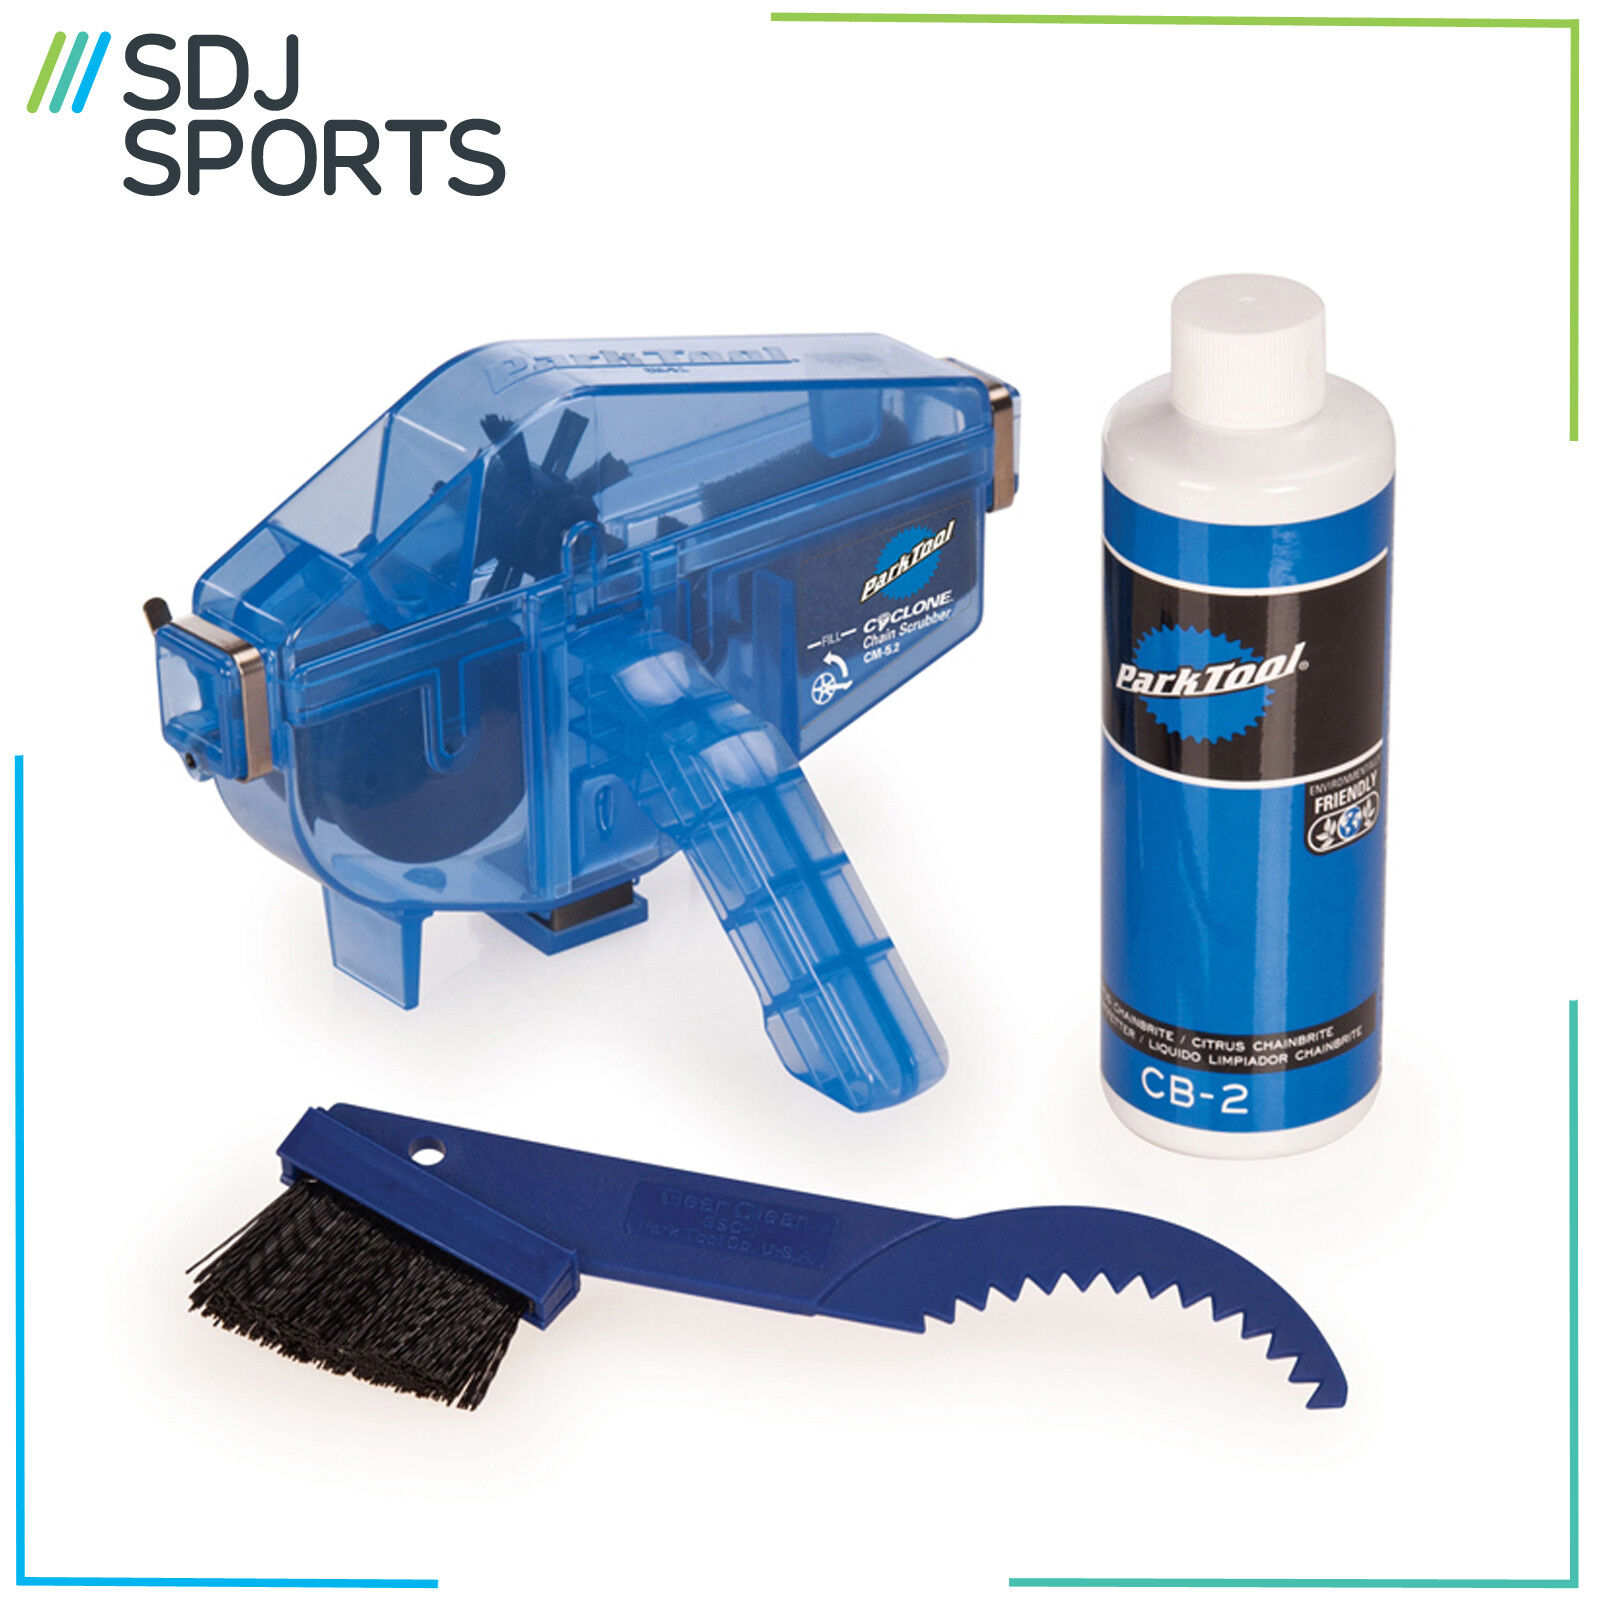 Parque Tool CG2.3  BIKE CHAIN GANG CLEANING SYSTEM CYCLE KIT DEGREASER CLEANER  100% garantía genuina de contador